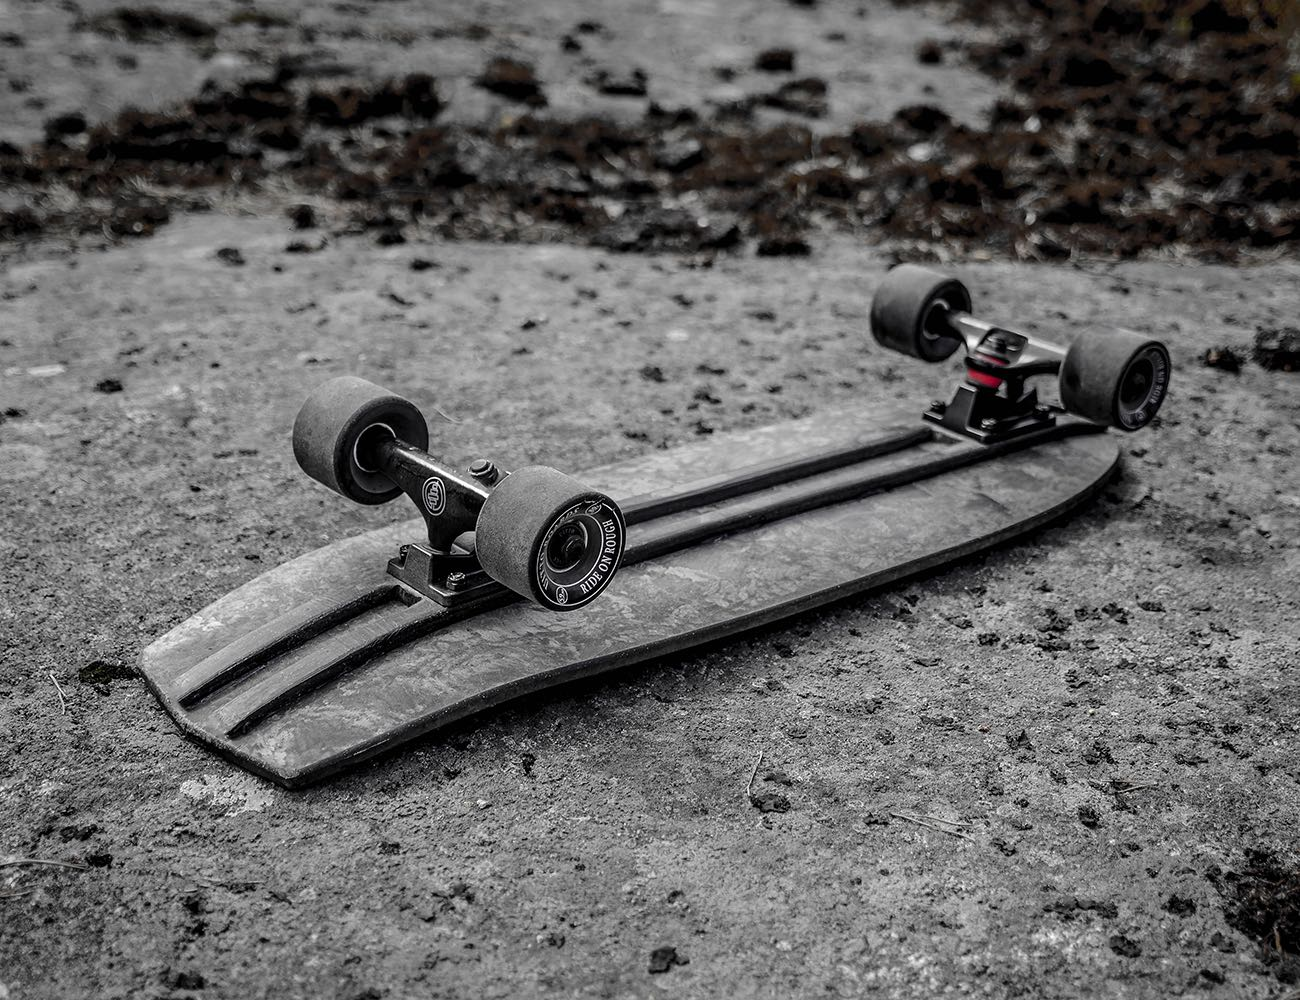 Uitto – The Biocomposite Skateboard